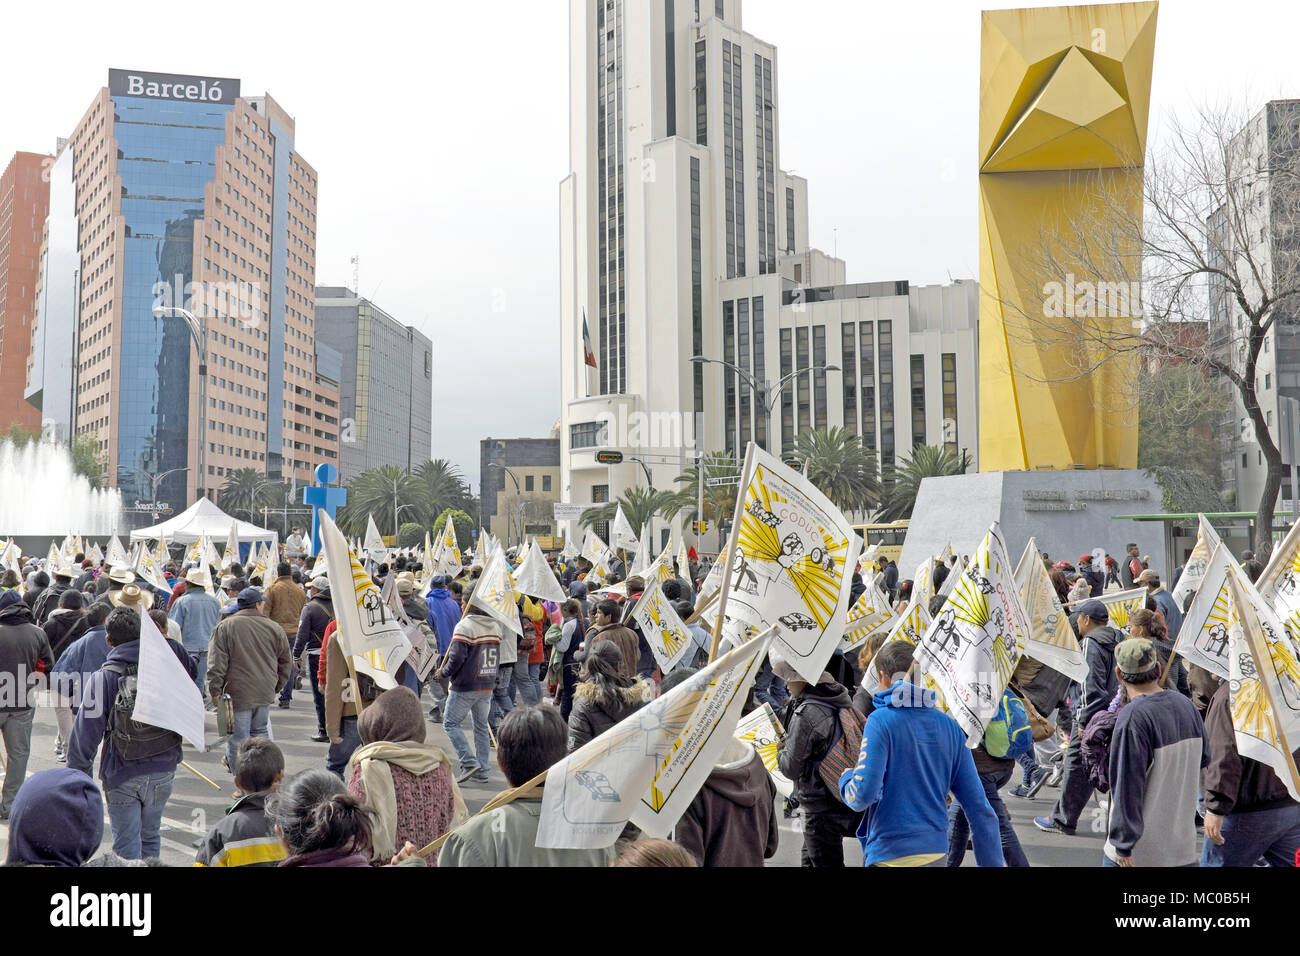 CODUC protesters march past El Caballito towards the Monumento a la Revolucion in Mexico City, Mexico protesting against agricultural policies. - Stock Image